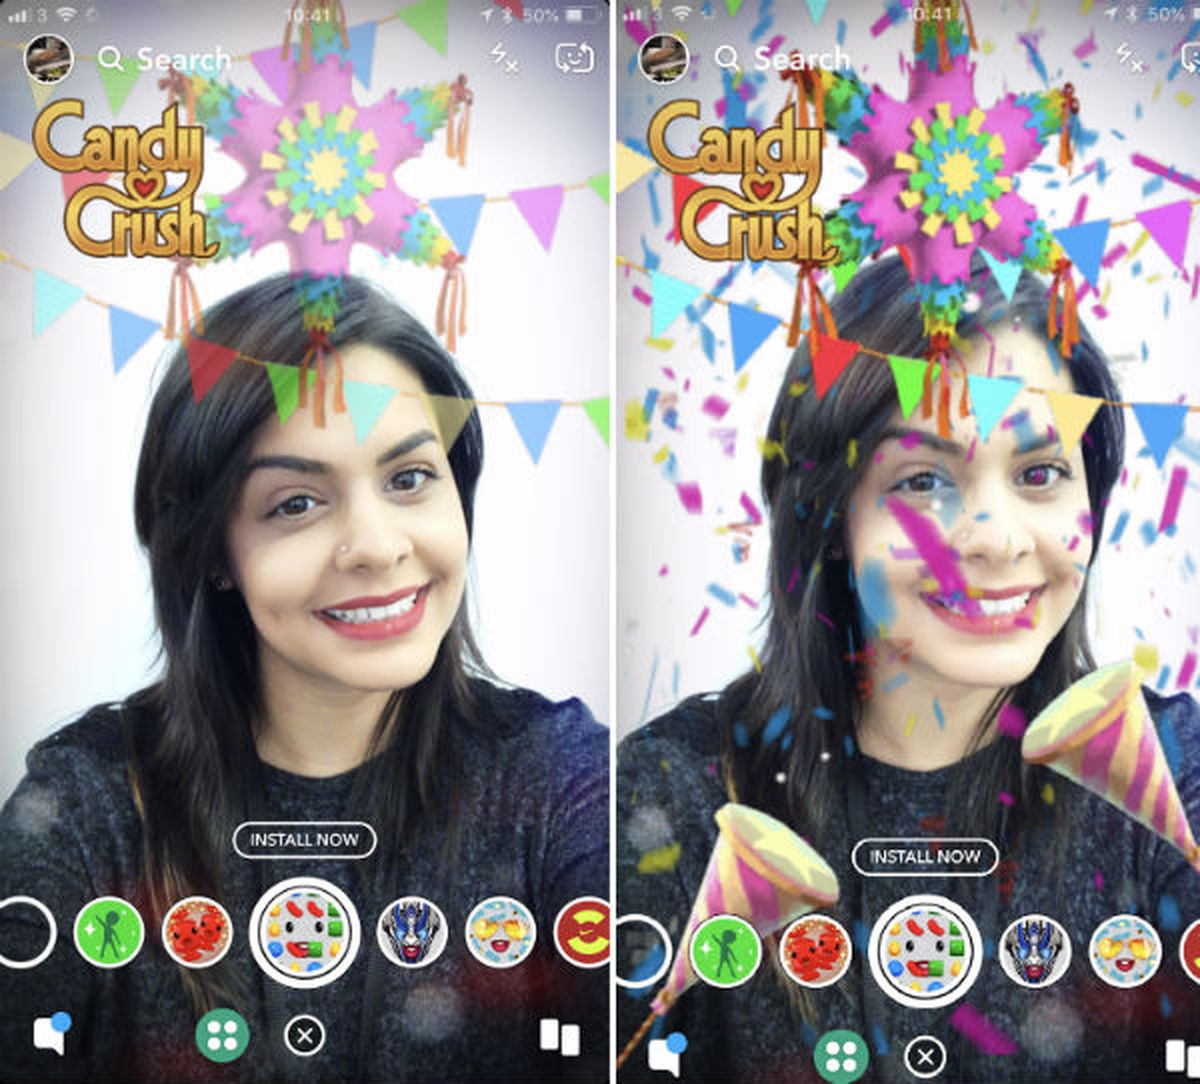 Snapchat is turning its Lenses platform into a shopping mall for brands